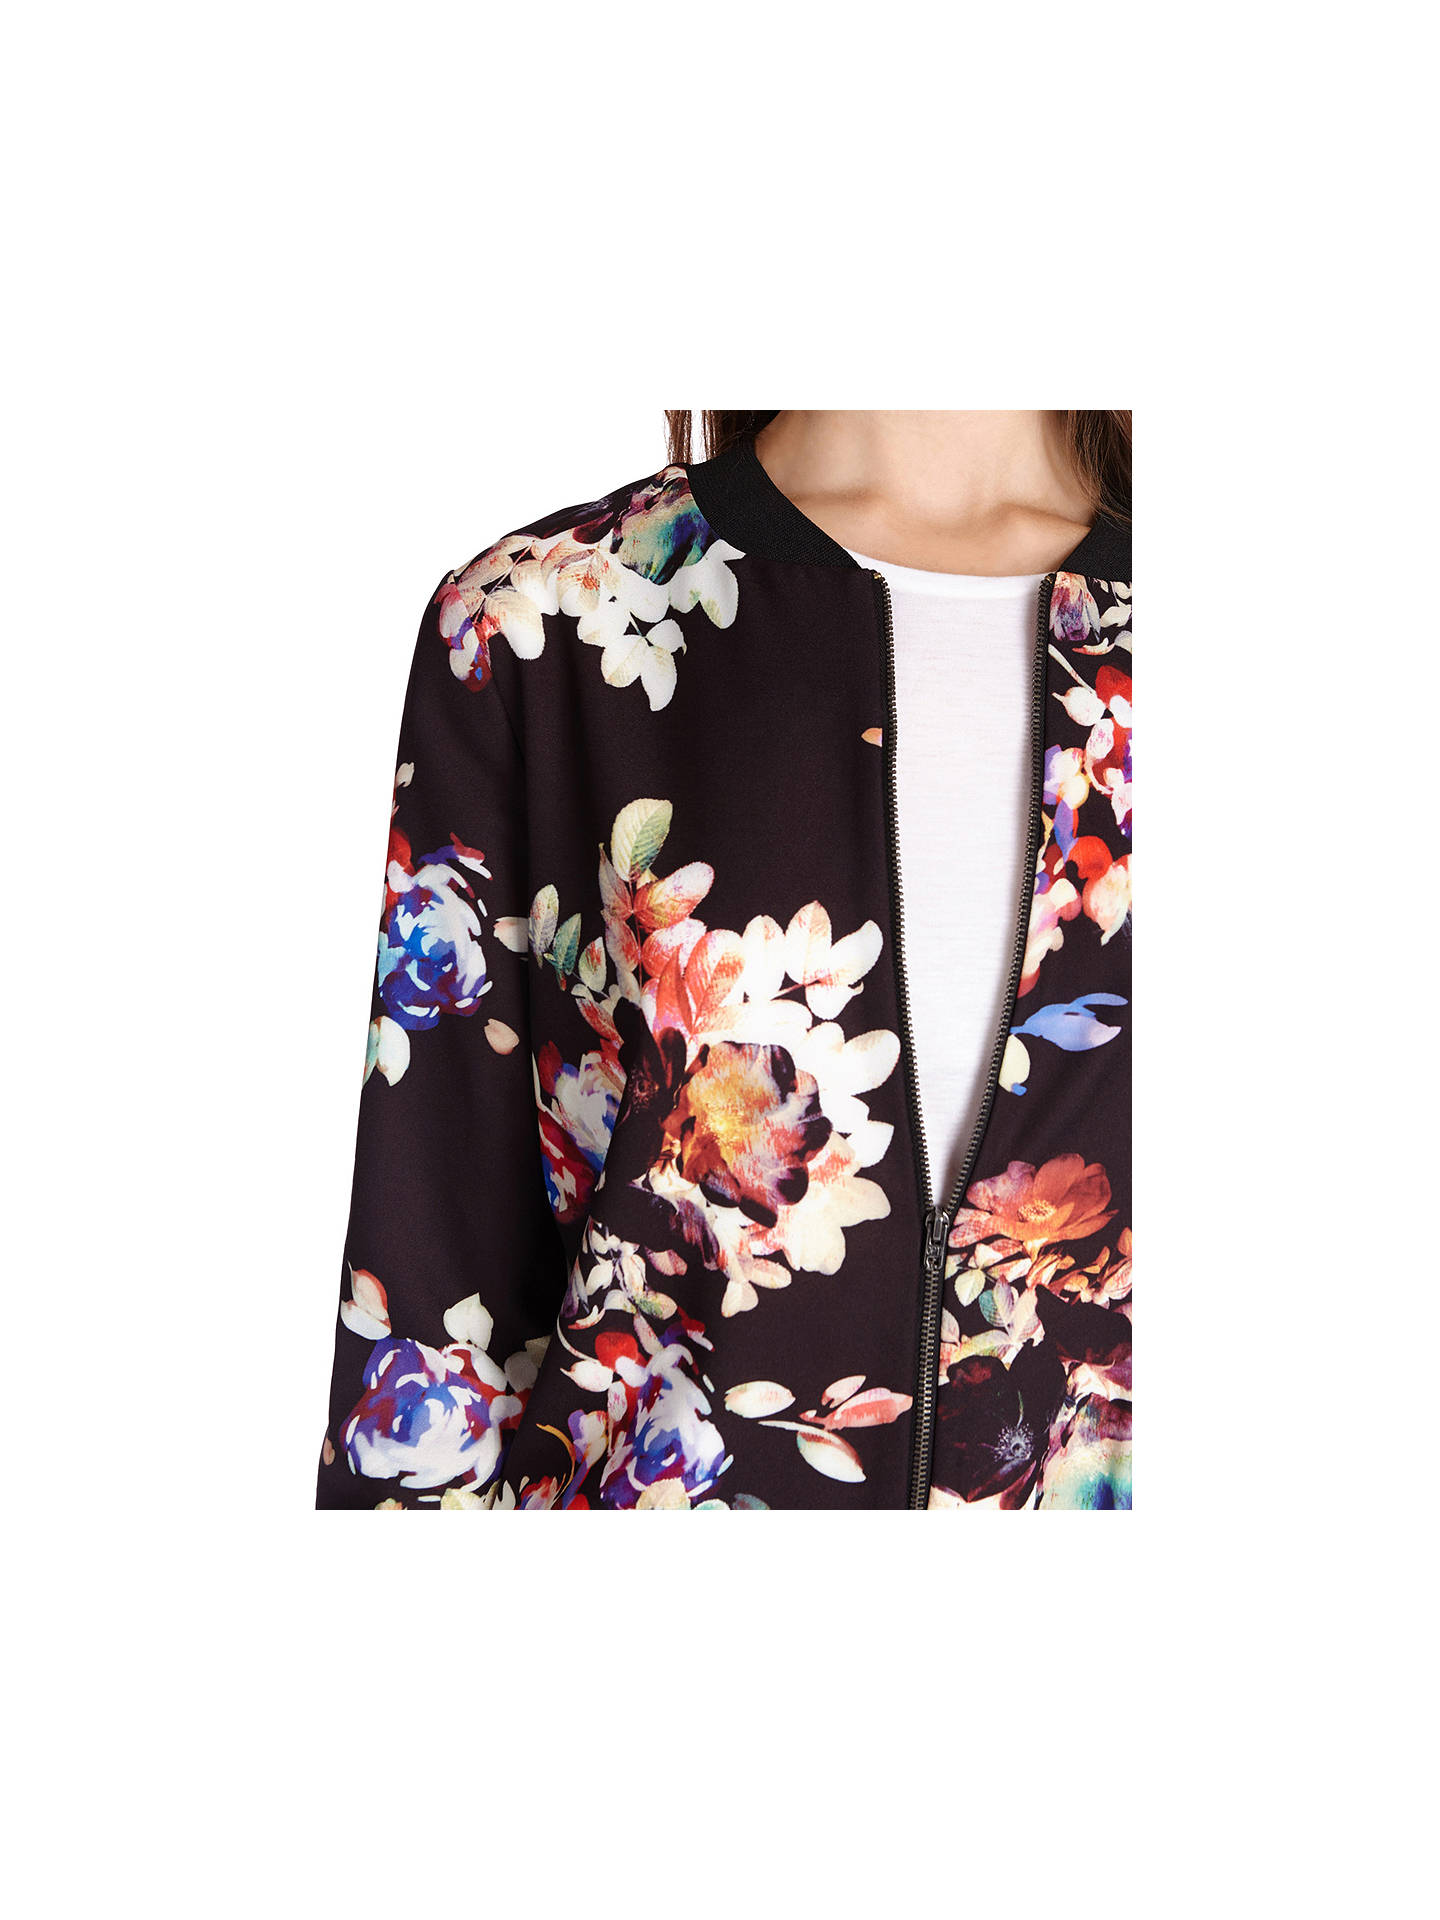 Daftar Harga Violet Floral Blazer Termurah 2018 Menamp039s Double Breasted Trench Coats Black Warehouse Patterned Printed Bomber Jacket Pattern At Buywarehouse 6 Online